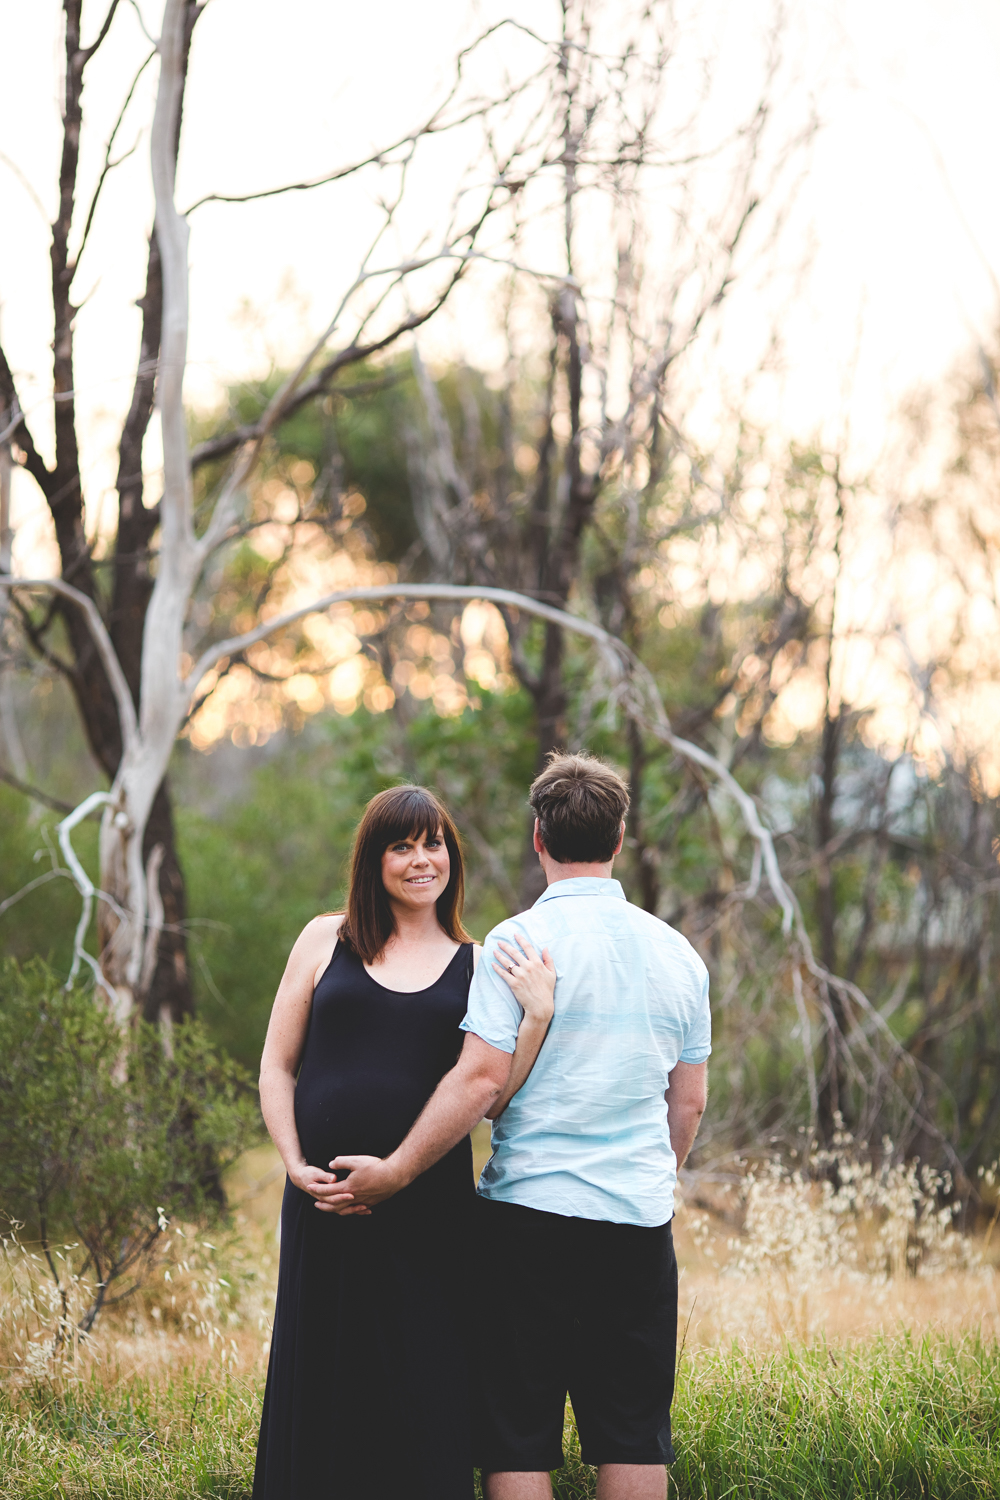 Melbourne maternity photography sunset session | Laura Coutts Photography